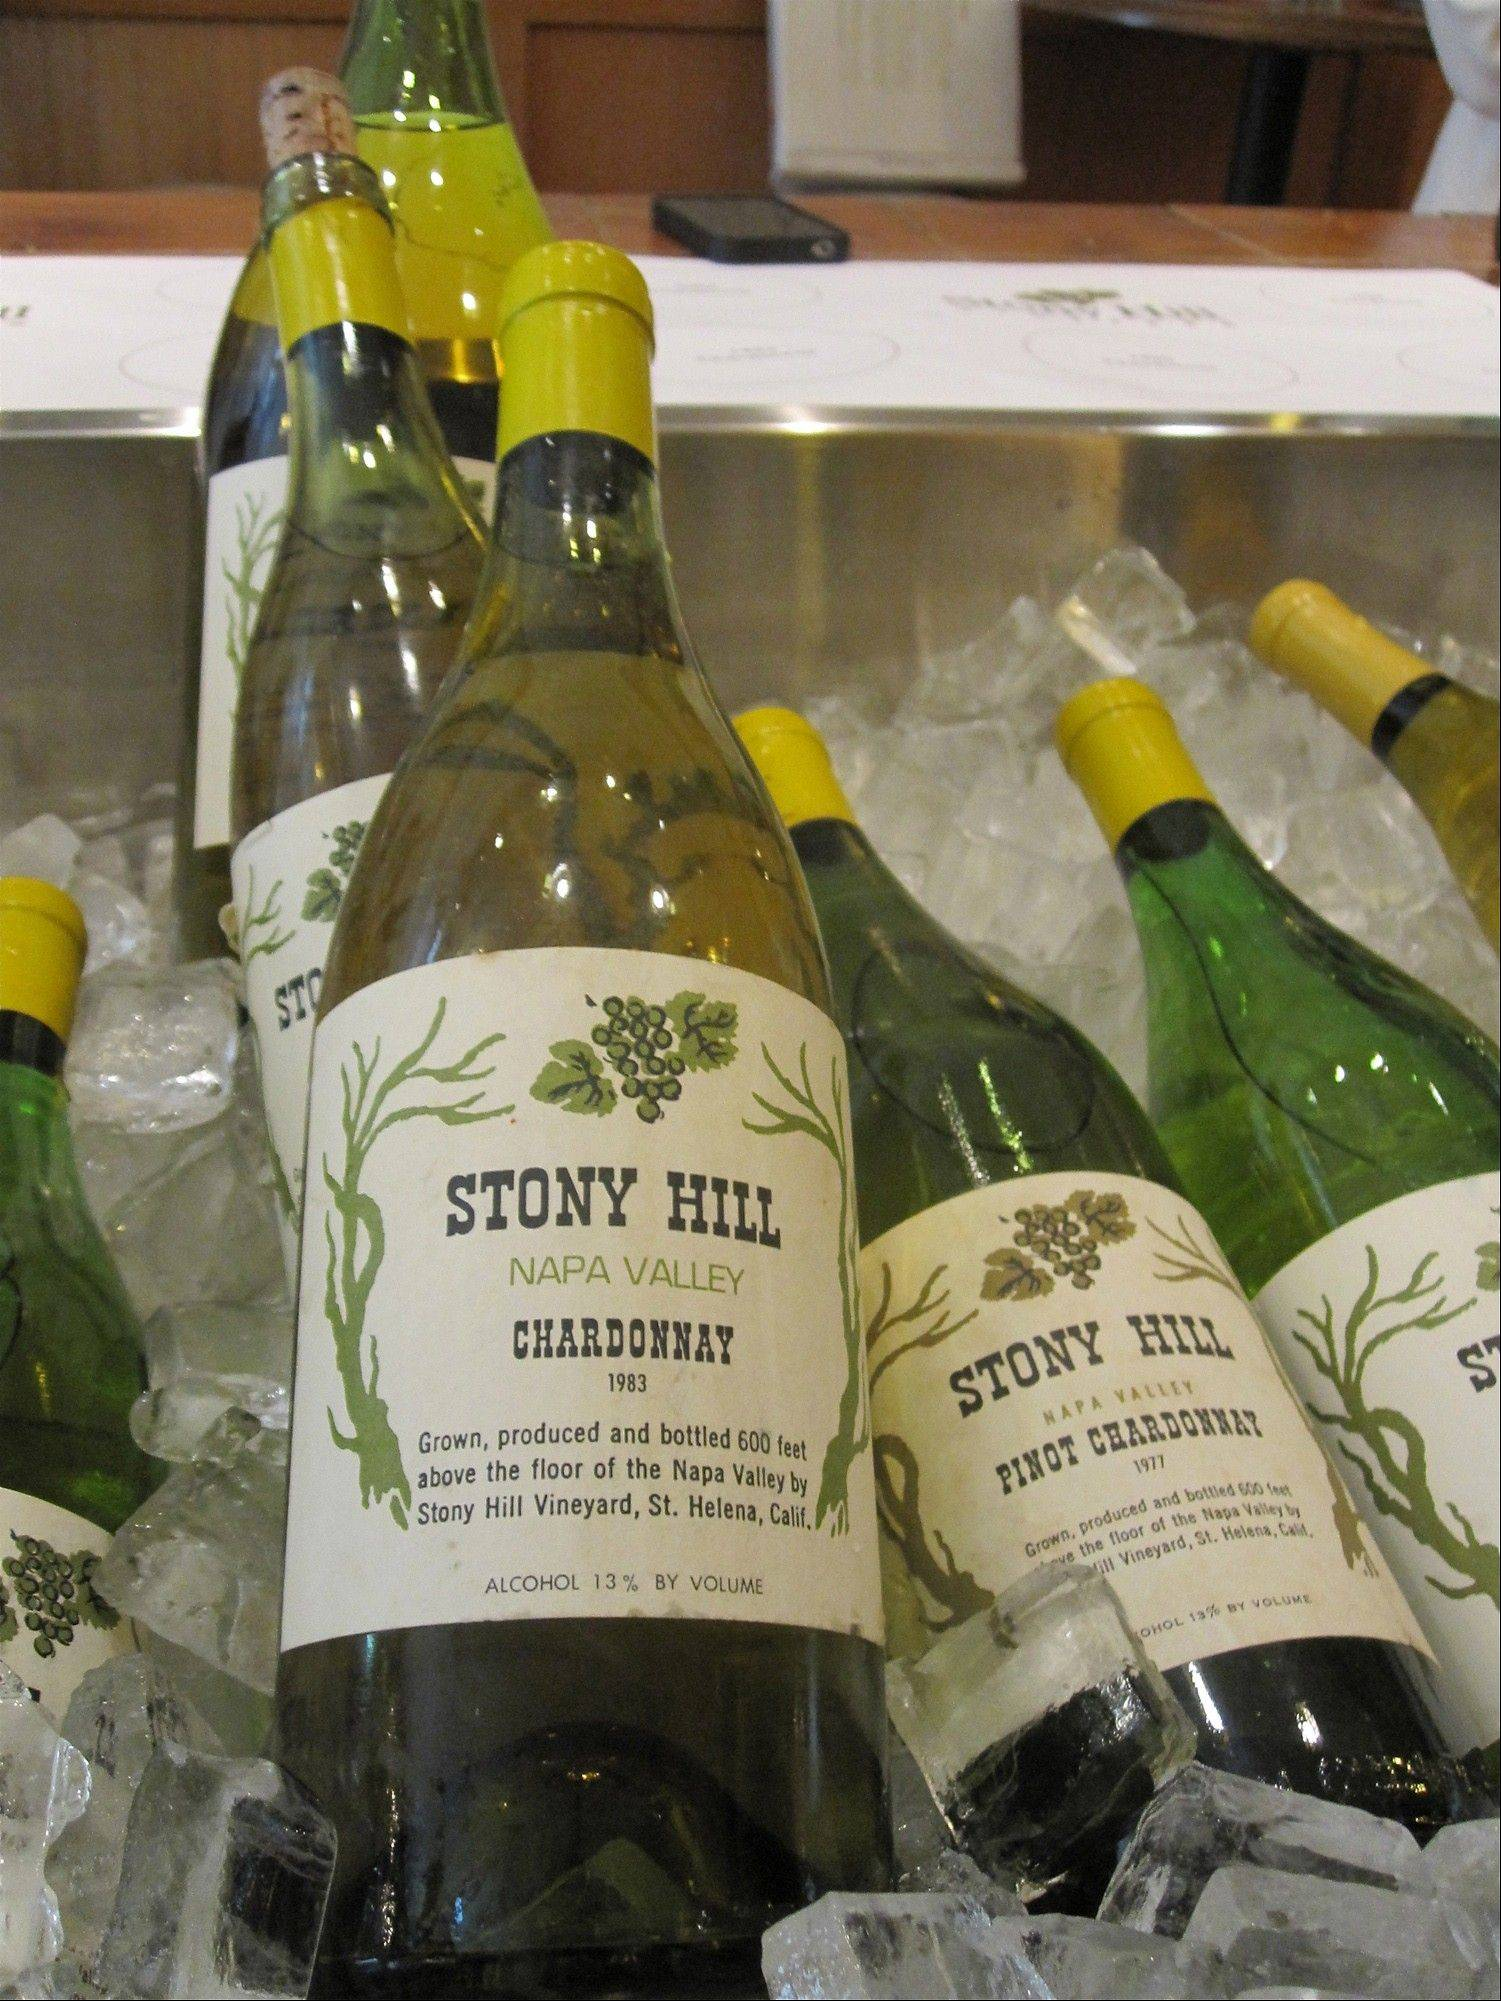 Old vintages of Stony Hill Vineyard�s Chardonnay chill on ice for a retrospective tasting in honor of the 60th anniversary of the winery�s first vintage, 1952, in New York. Stony Hill is one of California�s great old wineries, with a reputation for Chardonnays that can evolve and last for decades.